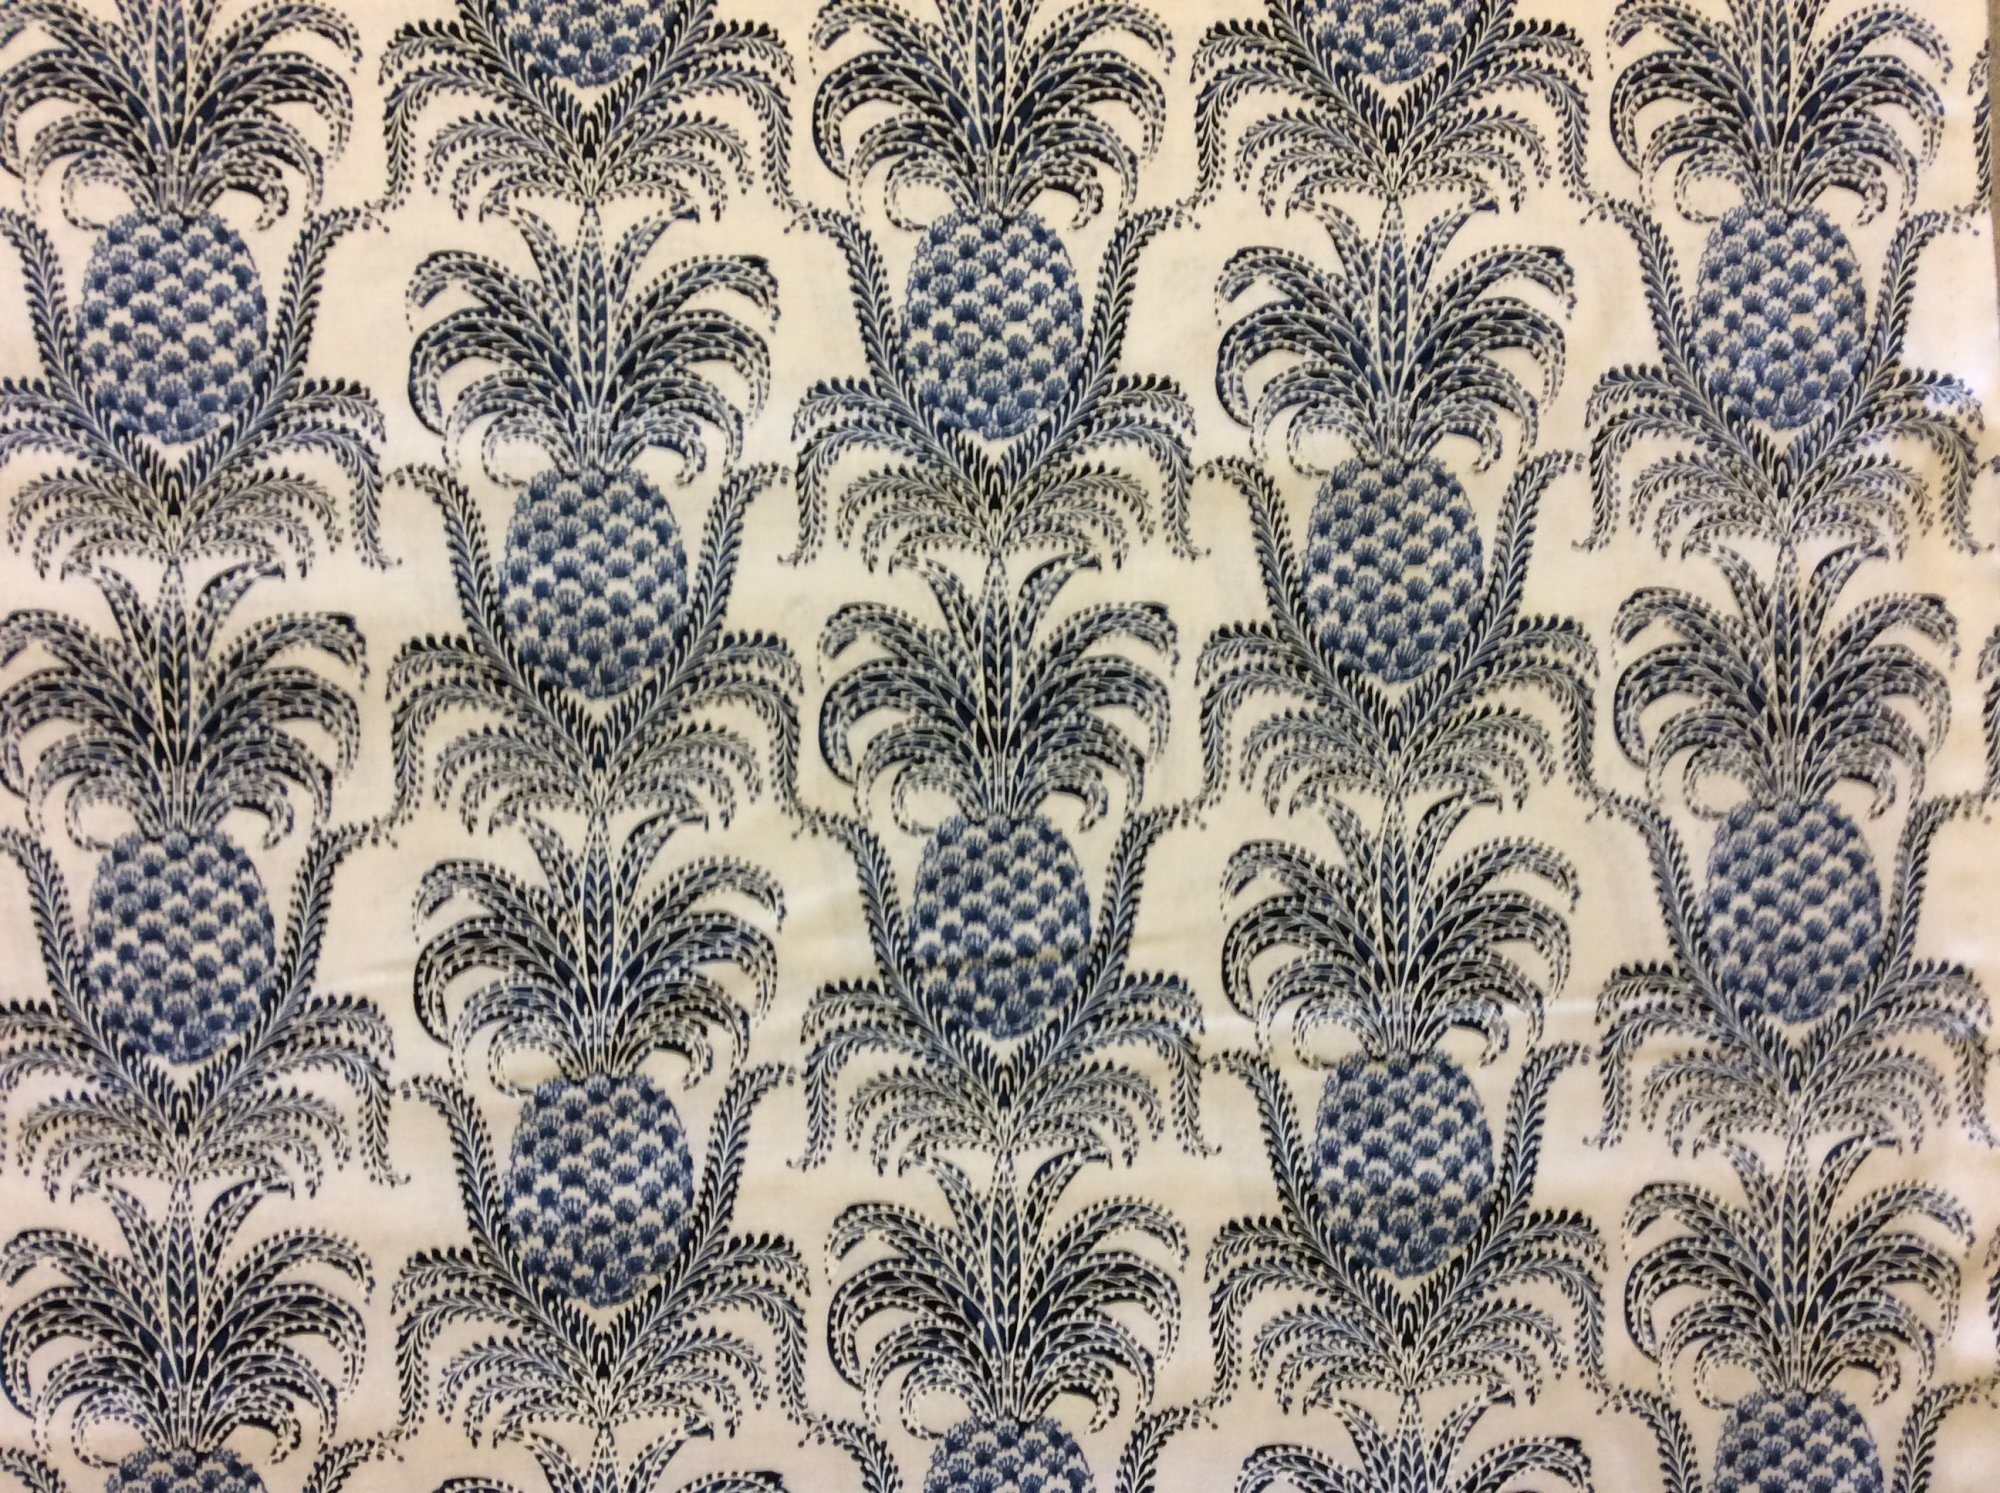 Pineapple New World Welcome French Country Toile Blue Willow Scroll Damask Fruit Print Cotton Quilt Fabric MM137